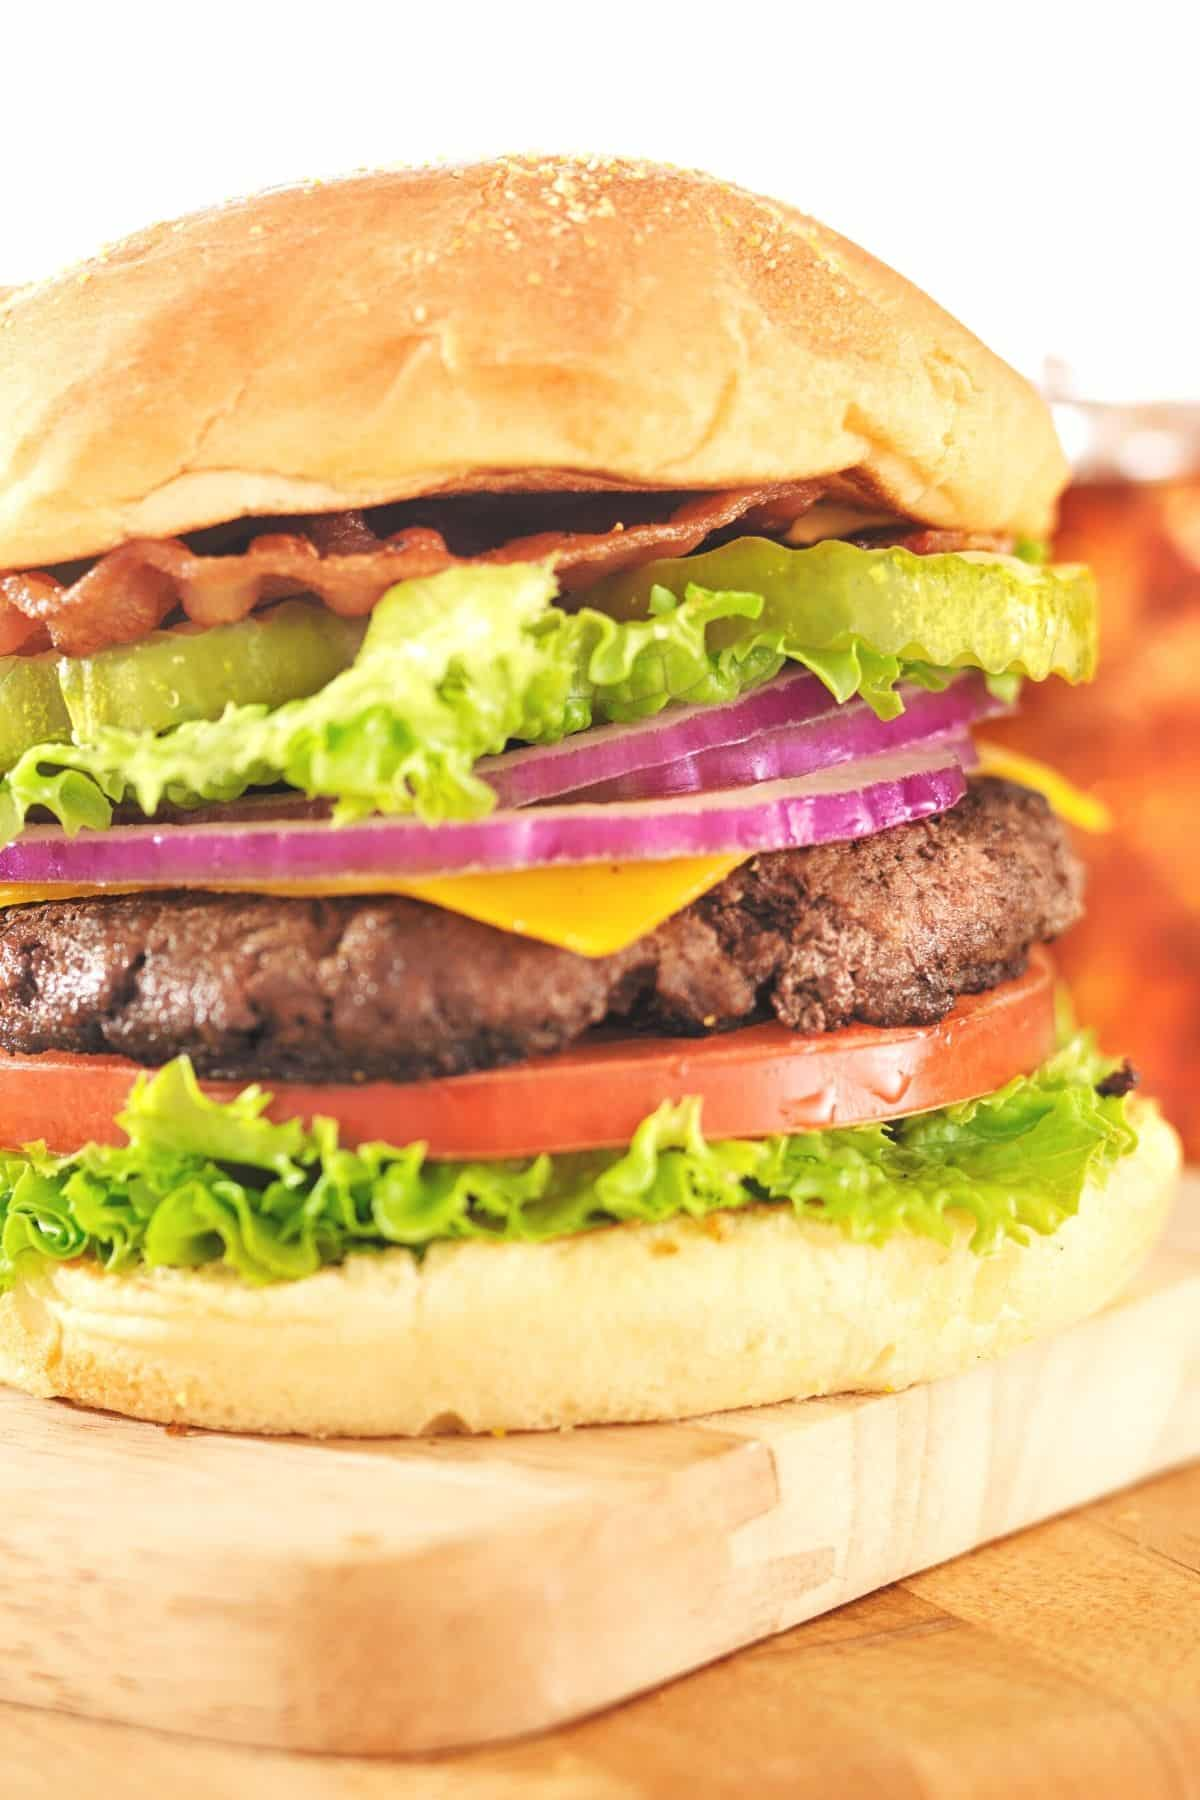 hamburger served with bacon, pickles, lettuce, cheese, onion, and tomato